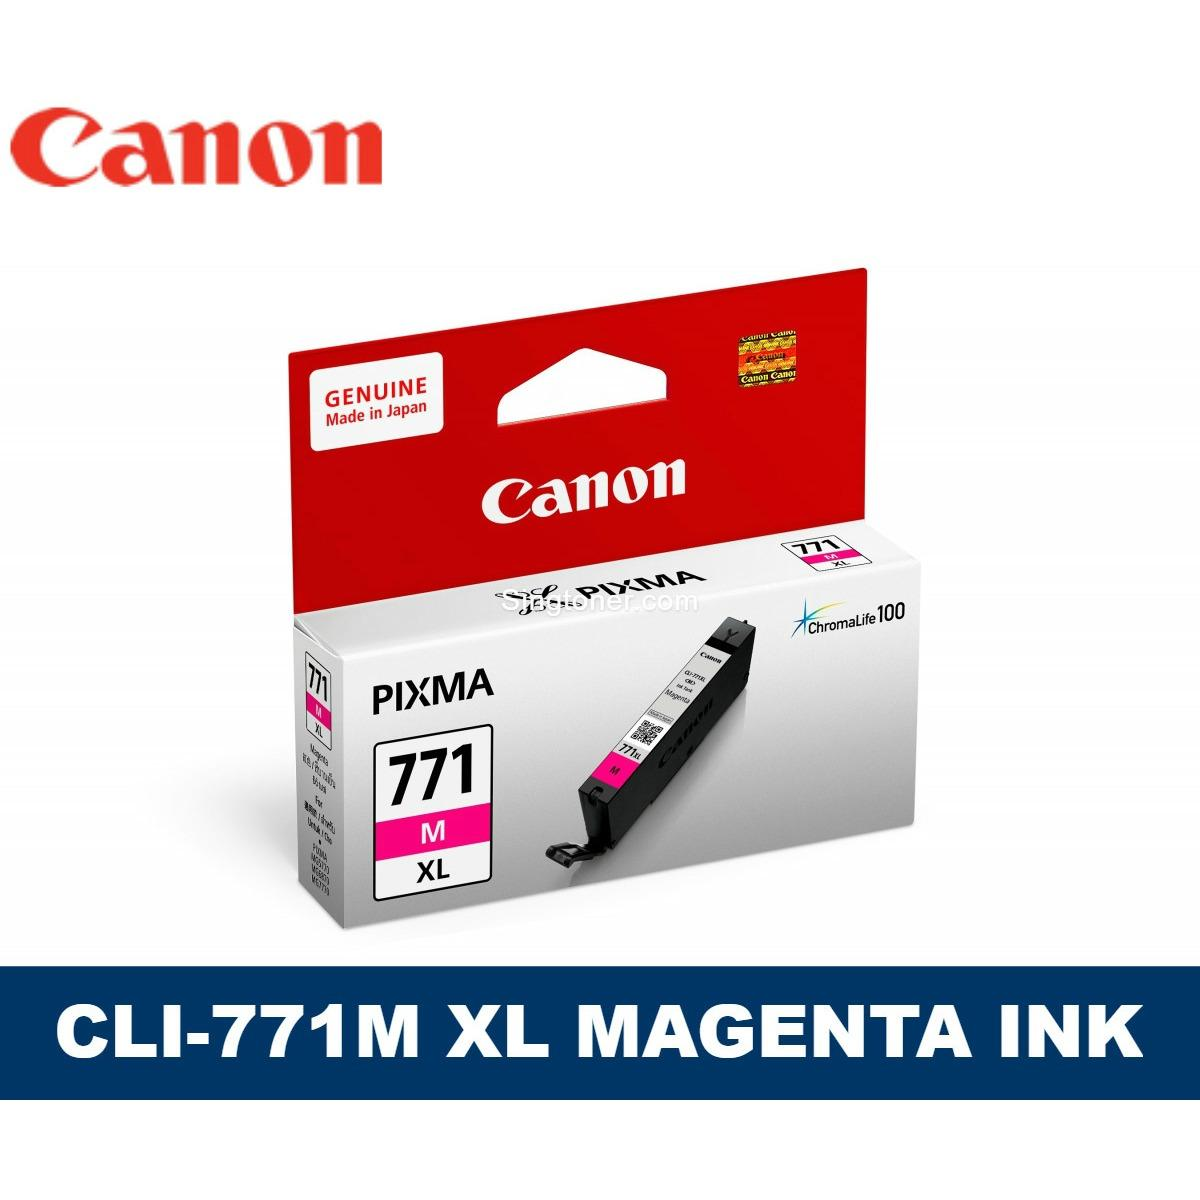 Top Rated Original Canon Pgi 770 Cli 771 Xl Pgbk Black Cyan Magenta Yellow Grey Ink For Pixma Mg7770 Pixma Mg6870 Pixma Mg5770 Pgi770Xl Pgi 770 Xl Cli771Xl Cli 771 Xl 770Xl 771Xl Pgi 770Xl Cli 771Xl